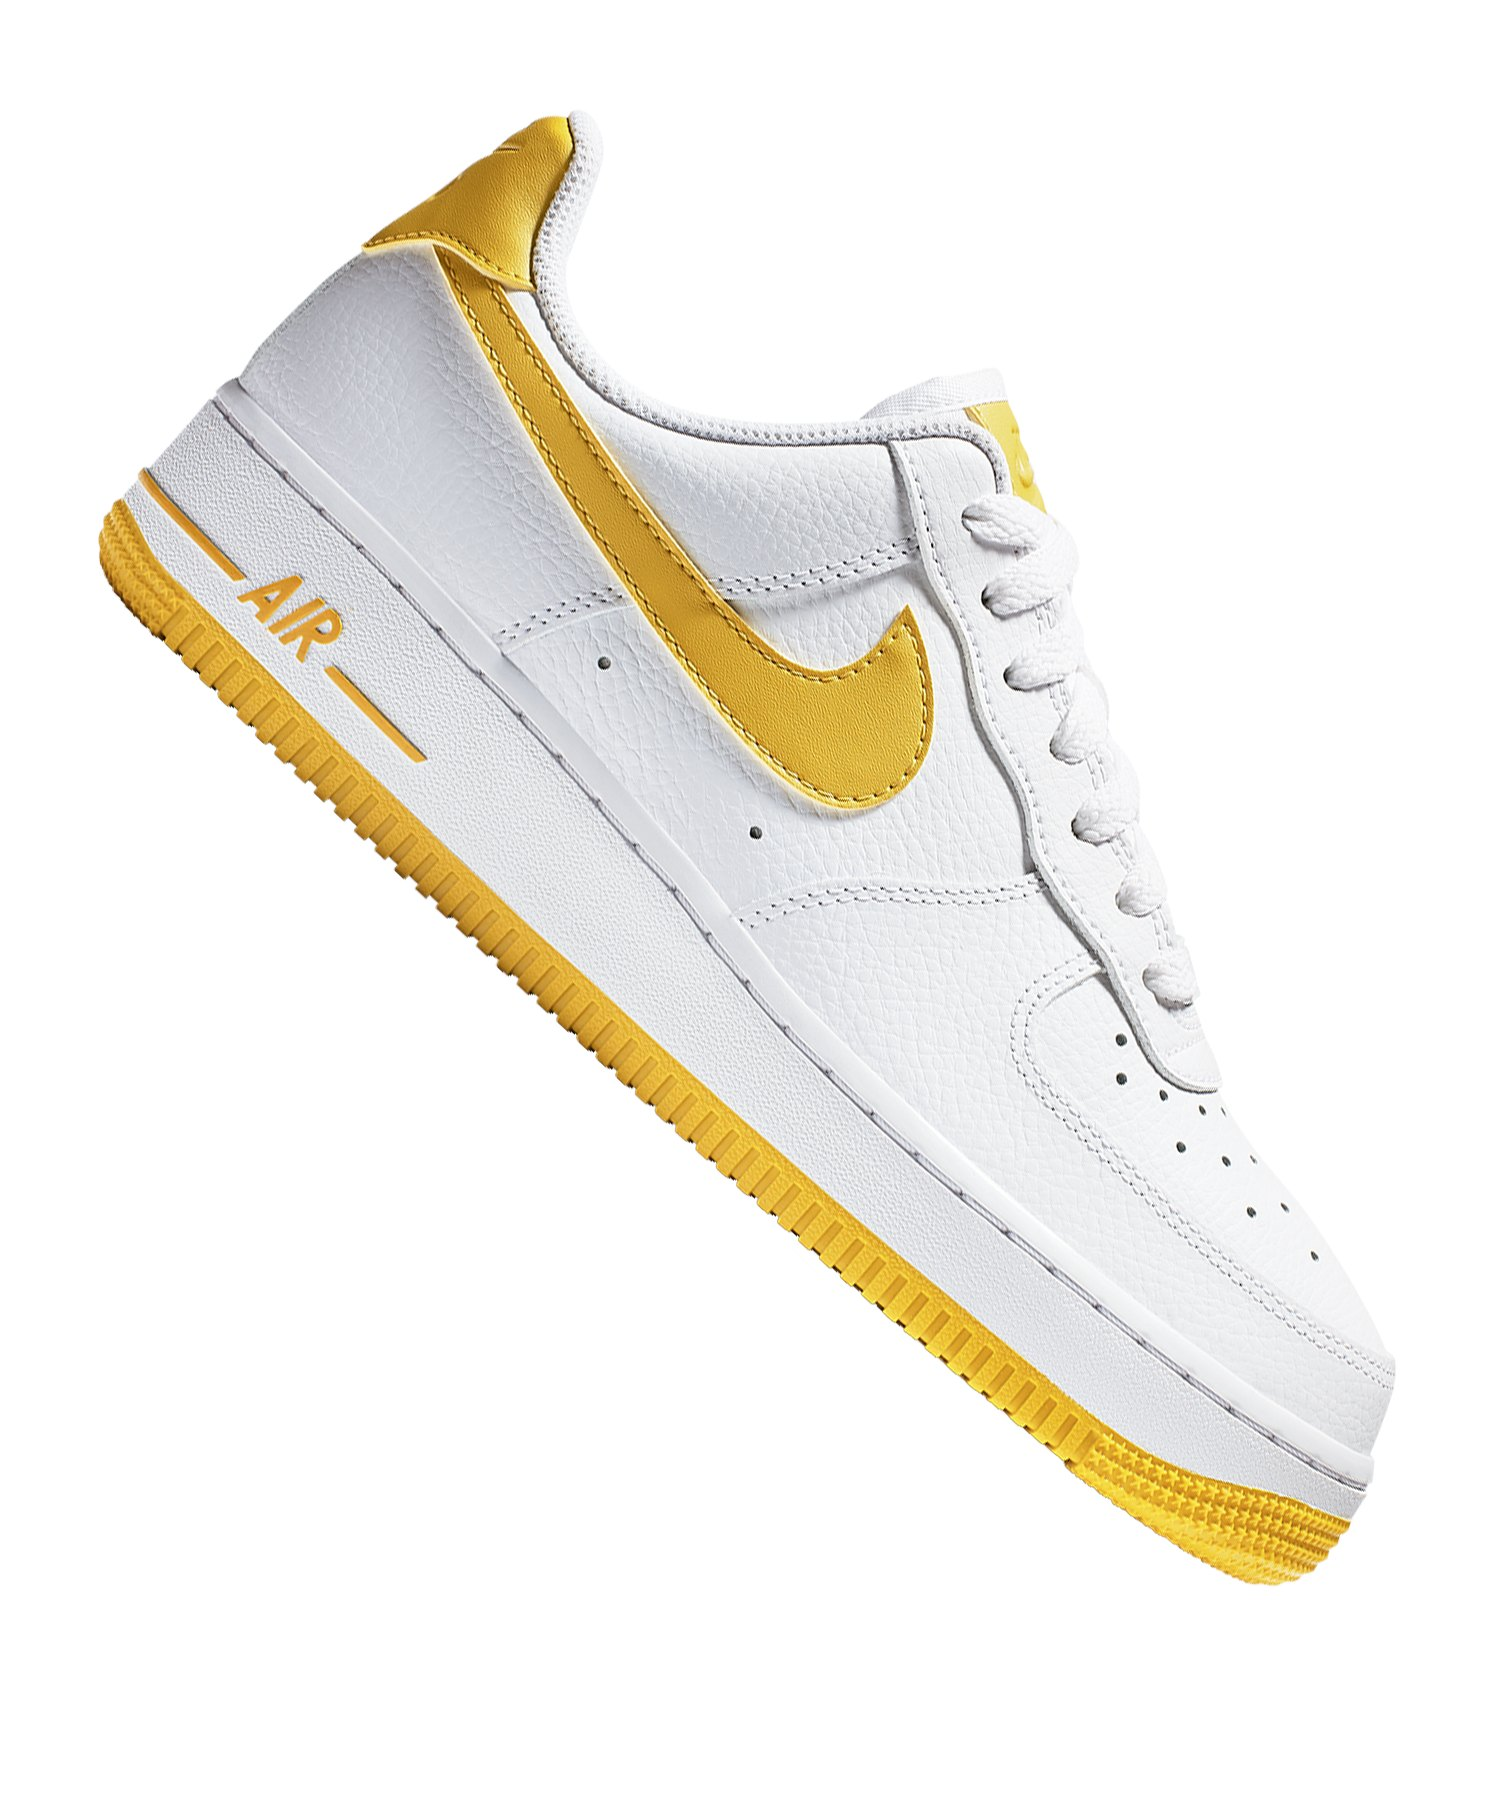 Nike Air Force 1 '07 Sneaker Damen Weiss Gelb F103